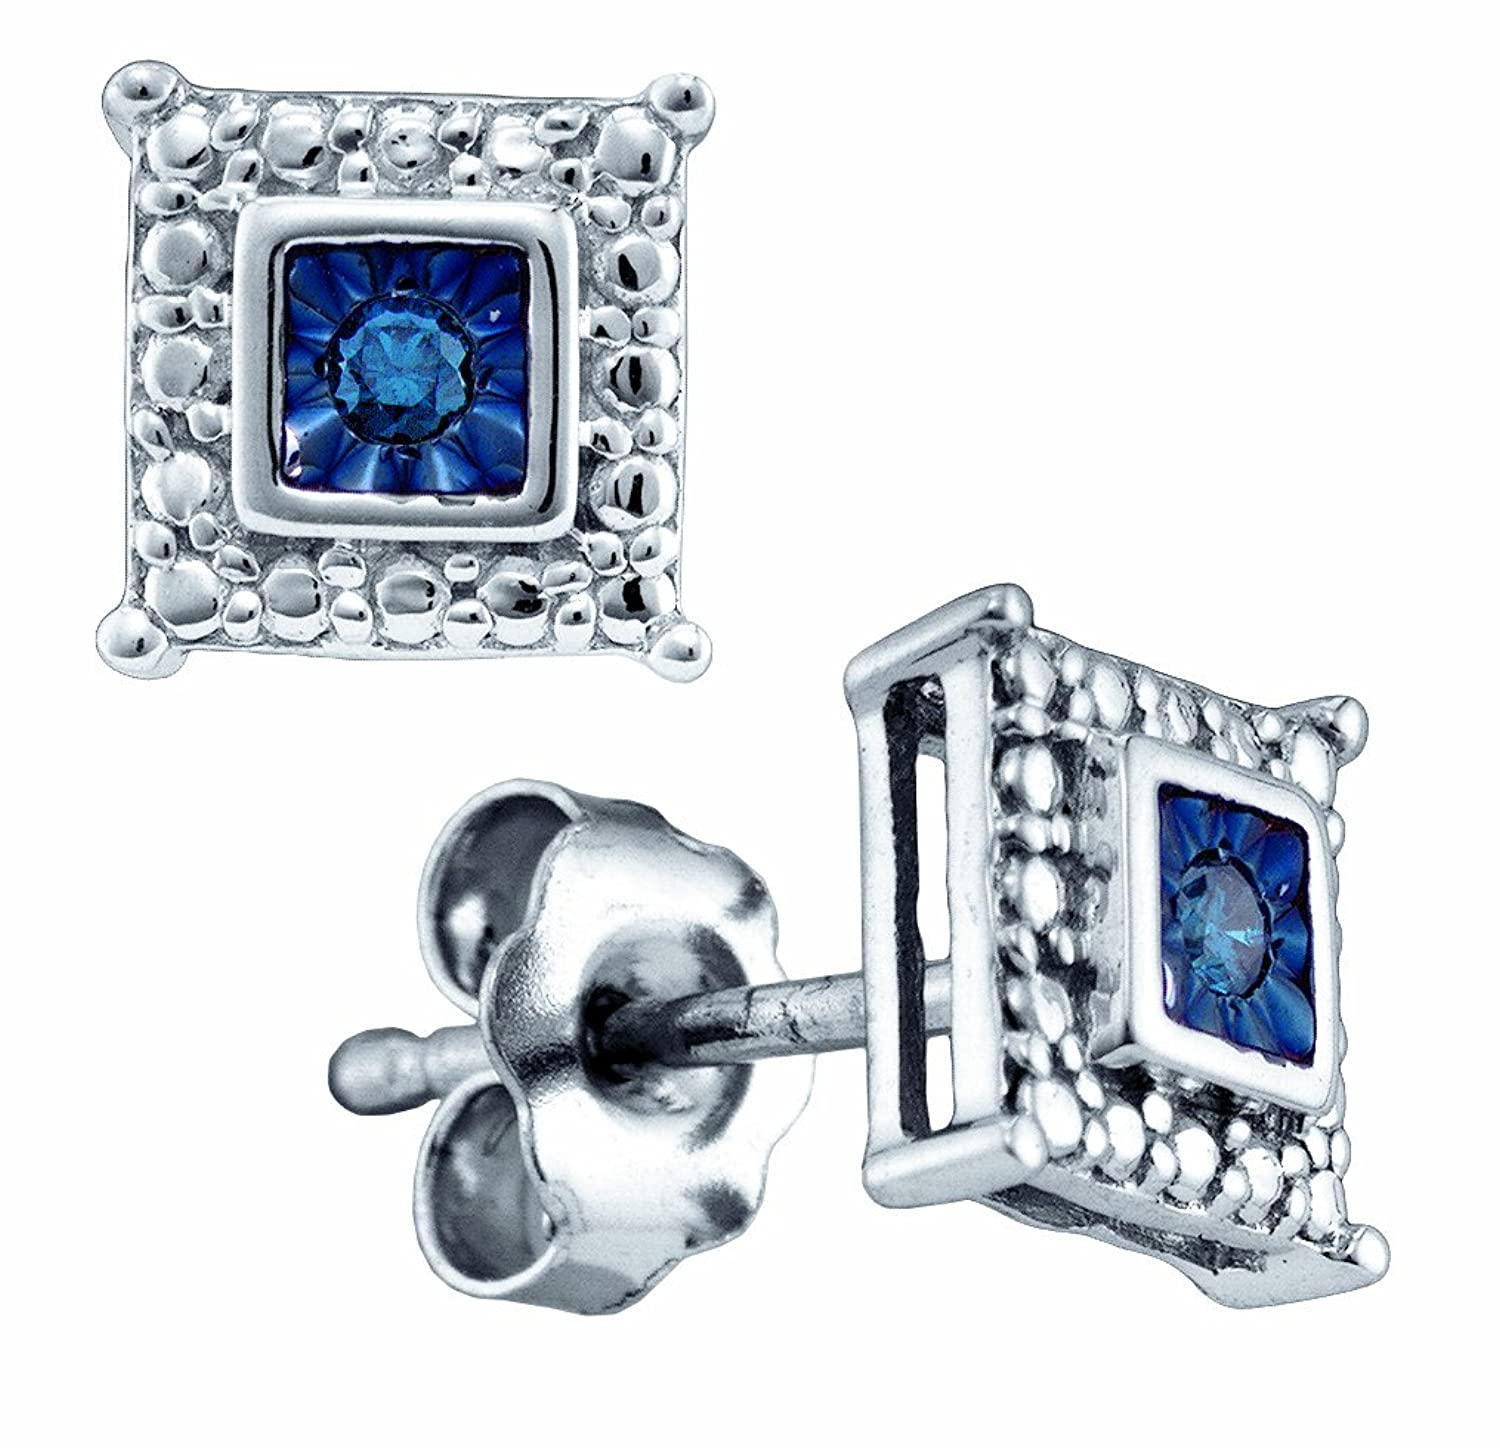 925 Sterling Silver Round Cut Blue Diamond - Square Princess Shape Milgrain Prong Set Studs Earrings with Secure Push Back Closure - (.05 cttw.)